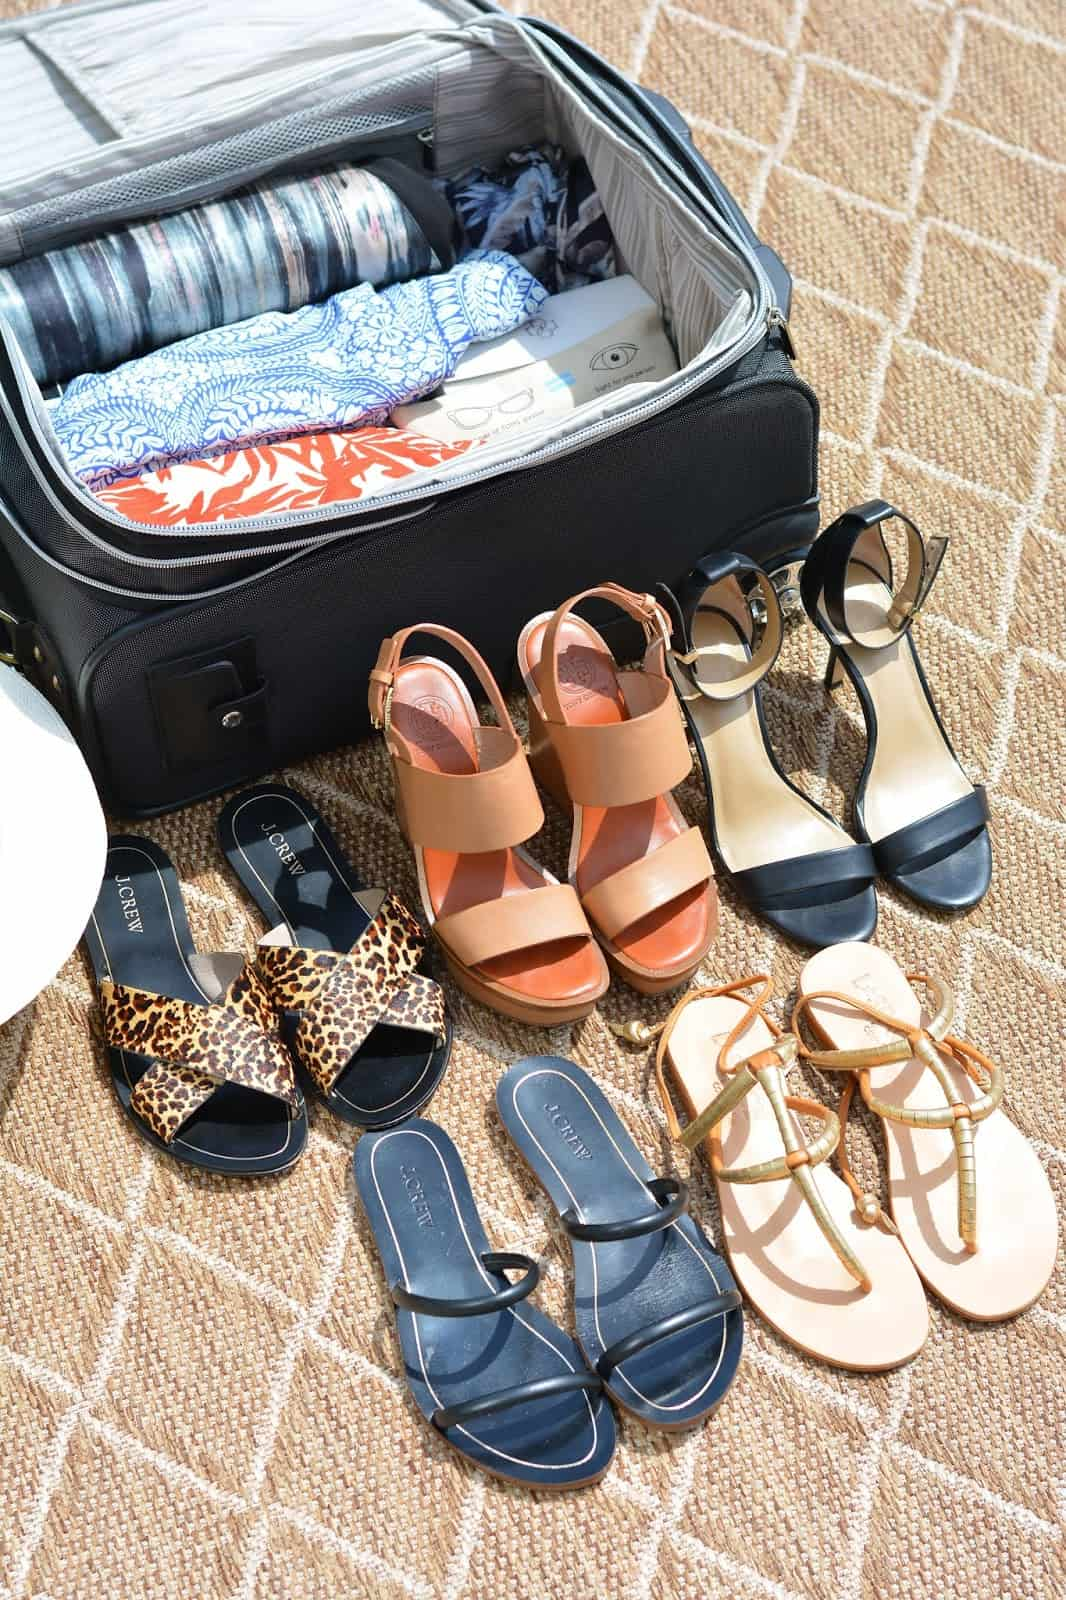 HOW TO PACK IN ONE CARRY ON BAG, TRAVEL ESSENTIALS, CARRY ON SUITCASE, VACATION PACKING TIPS, A LILT LOVE AFFAIR, CHICAGO BLOGGER